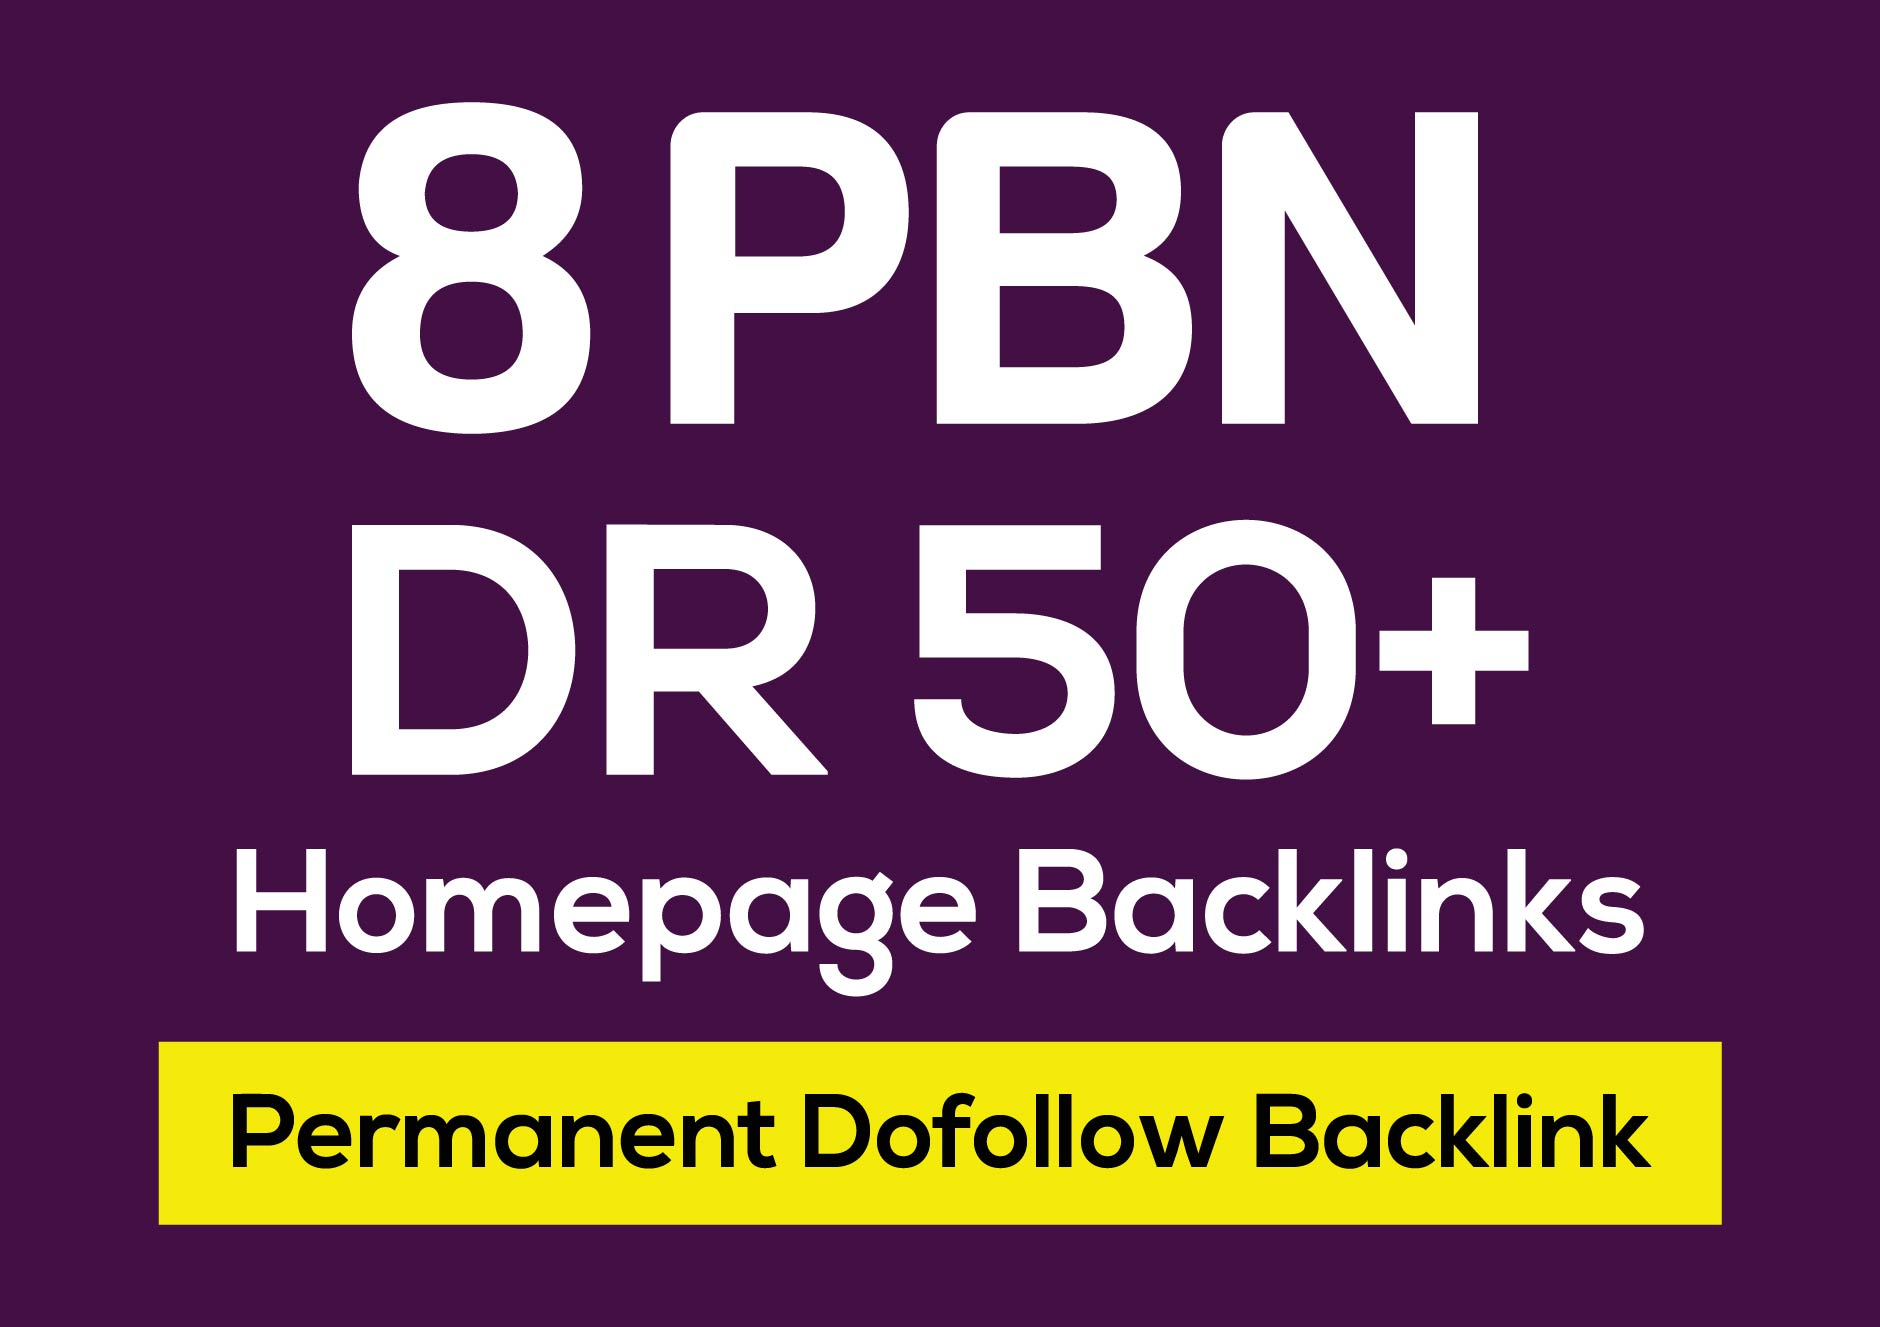 8 DR 50 to 80 PBN Homepage Dofollow Backlink